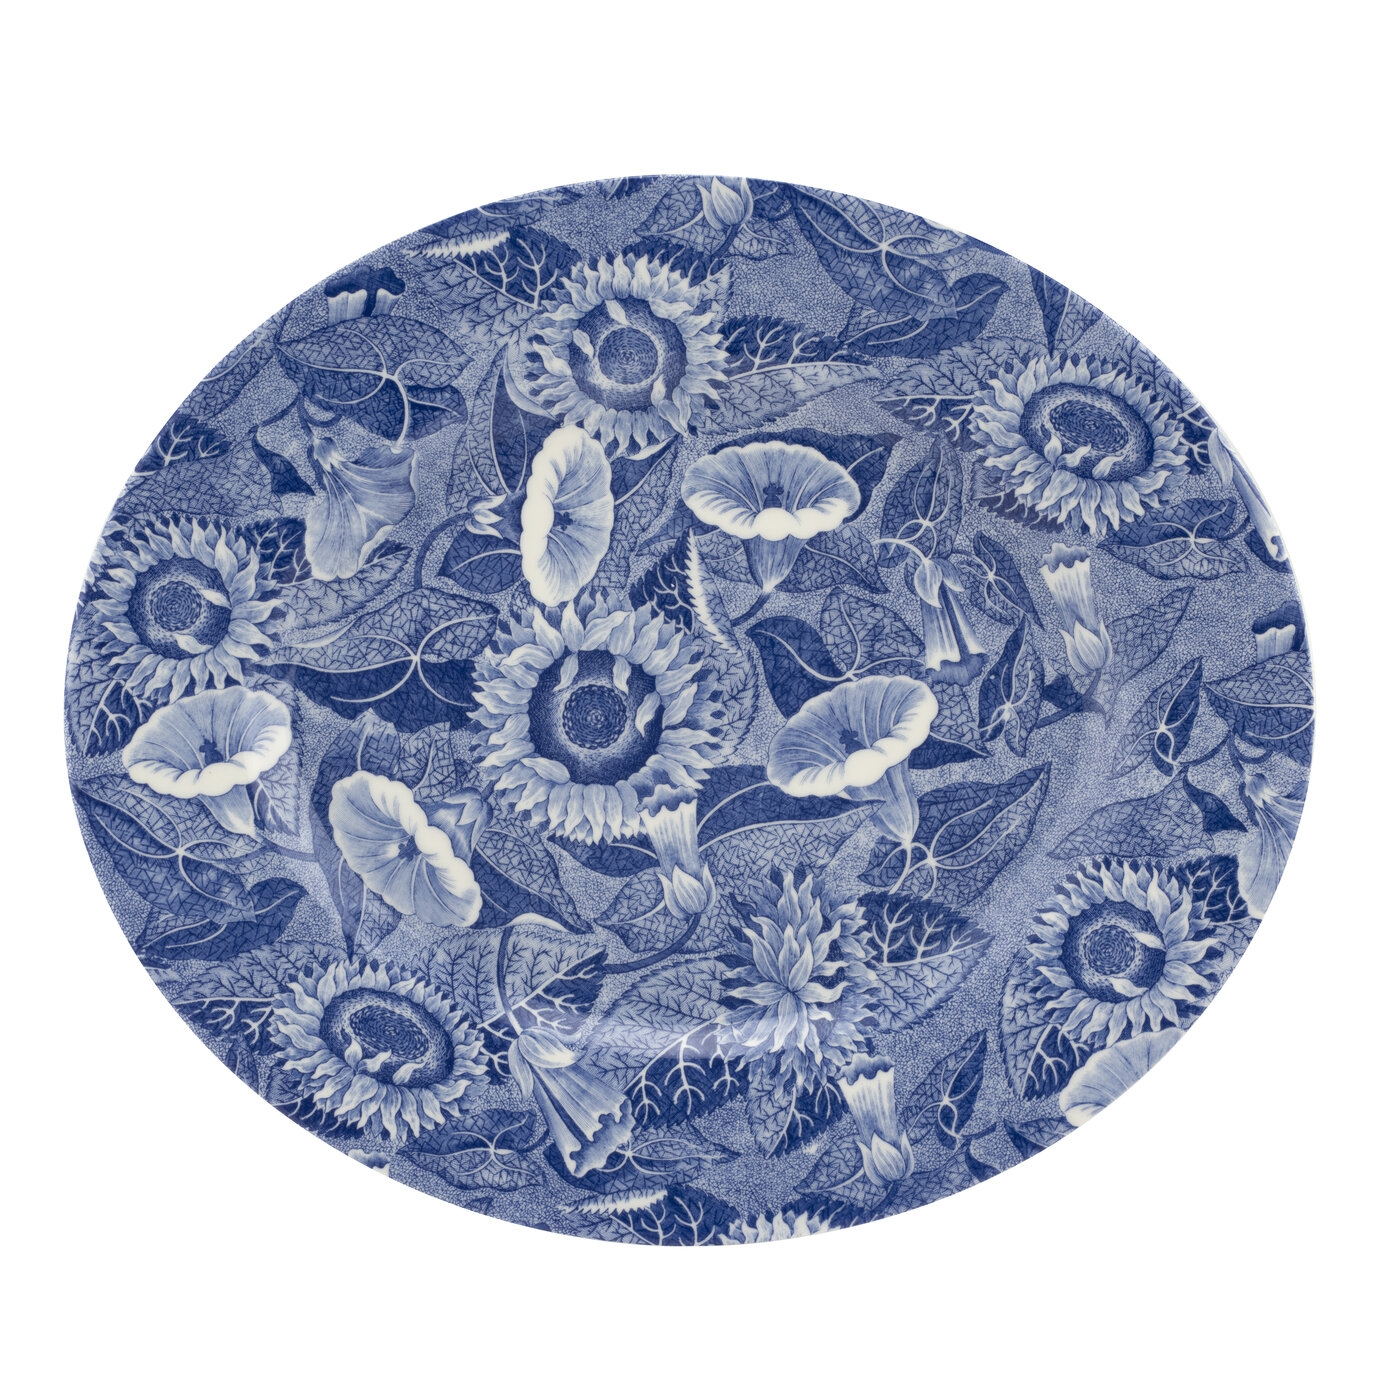 Spode Blue Room Sunflower 14 Inch Oval Platter image number 0